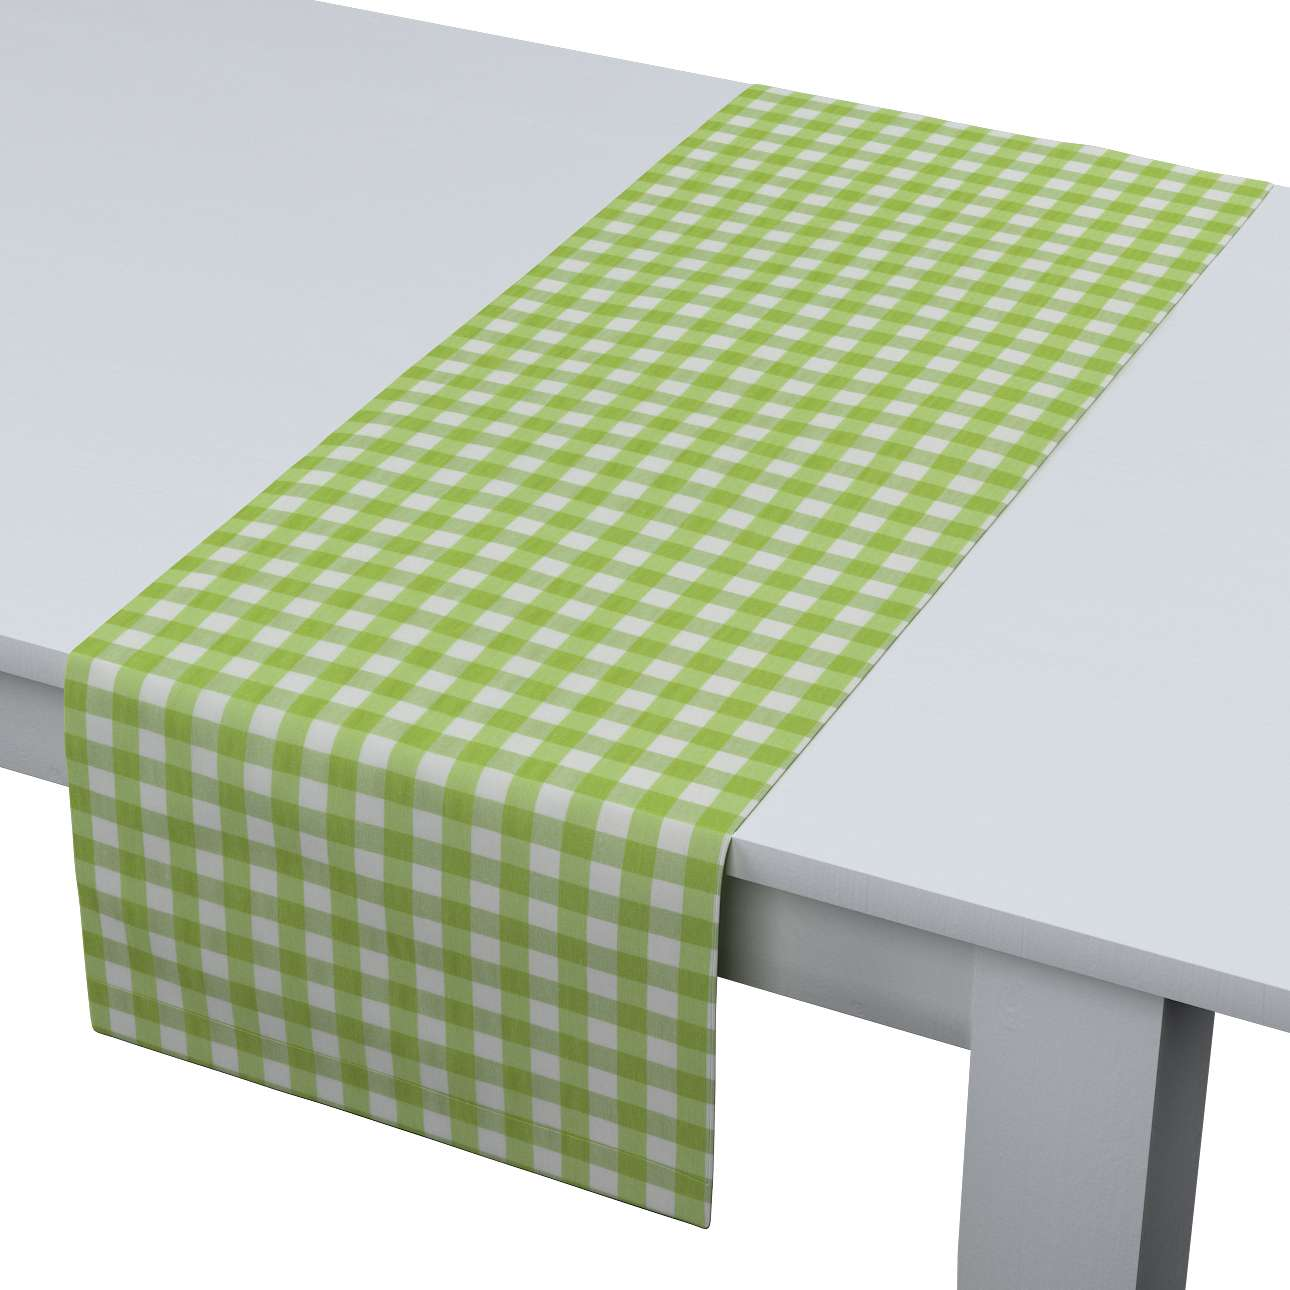 Table runner 40 x 130 cm (16 x 51 inch) in collection Quadro, fabric: 136-34